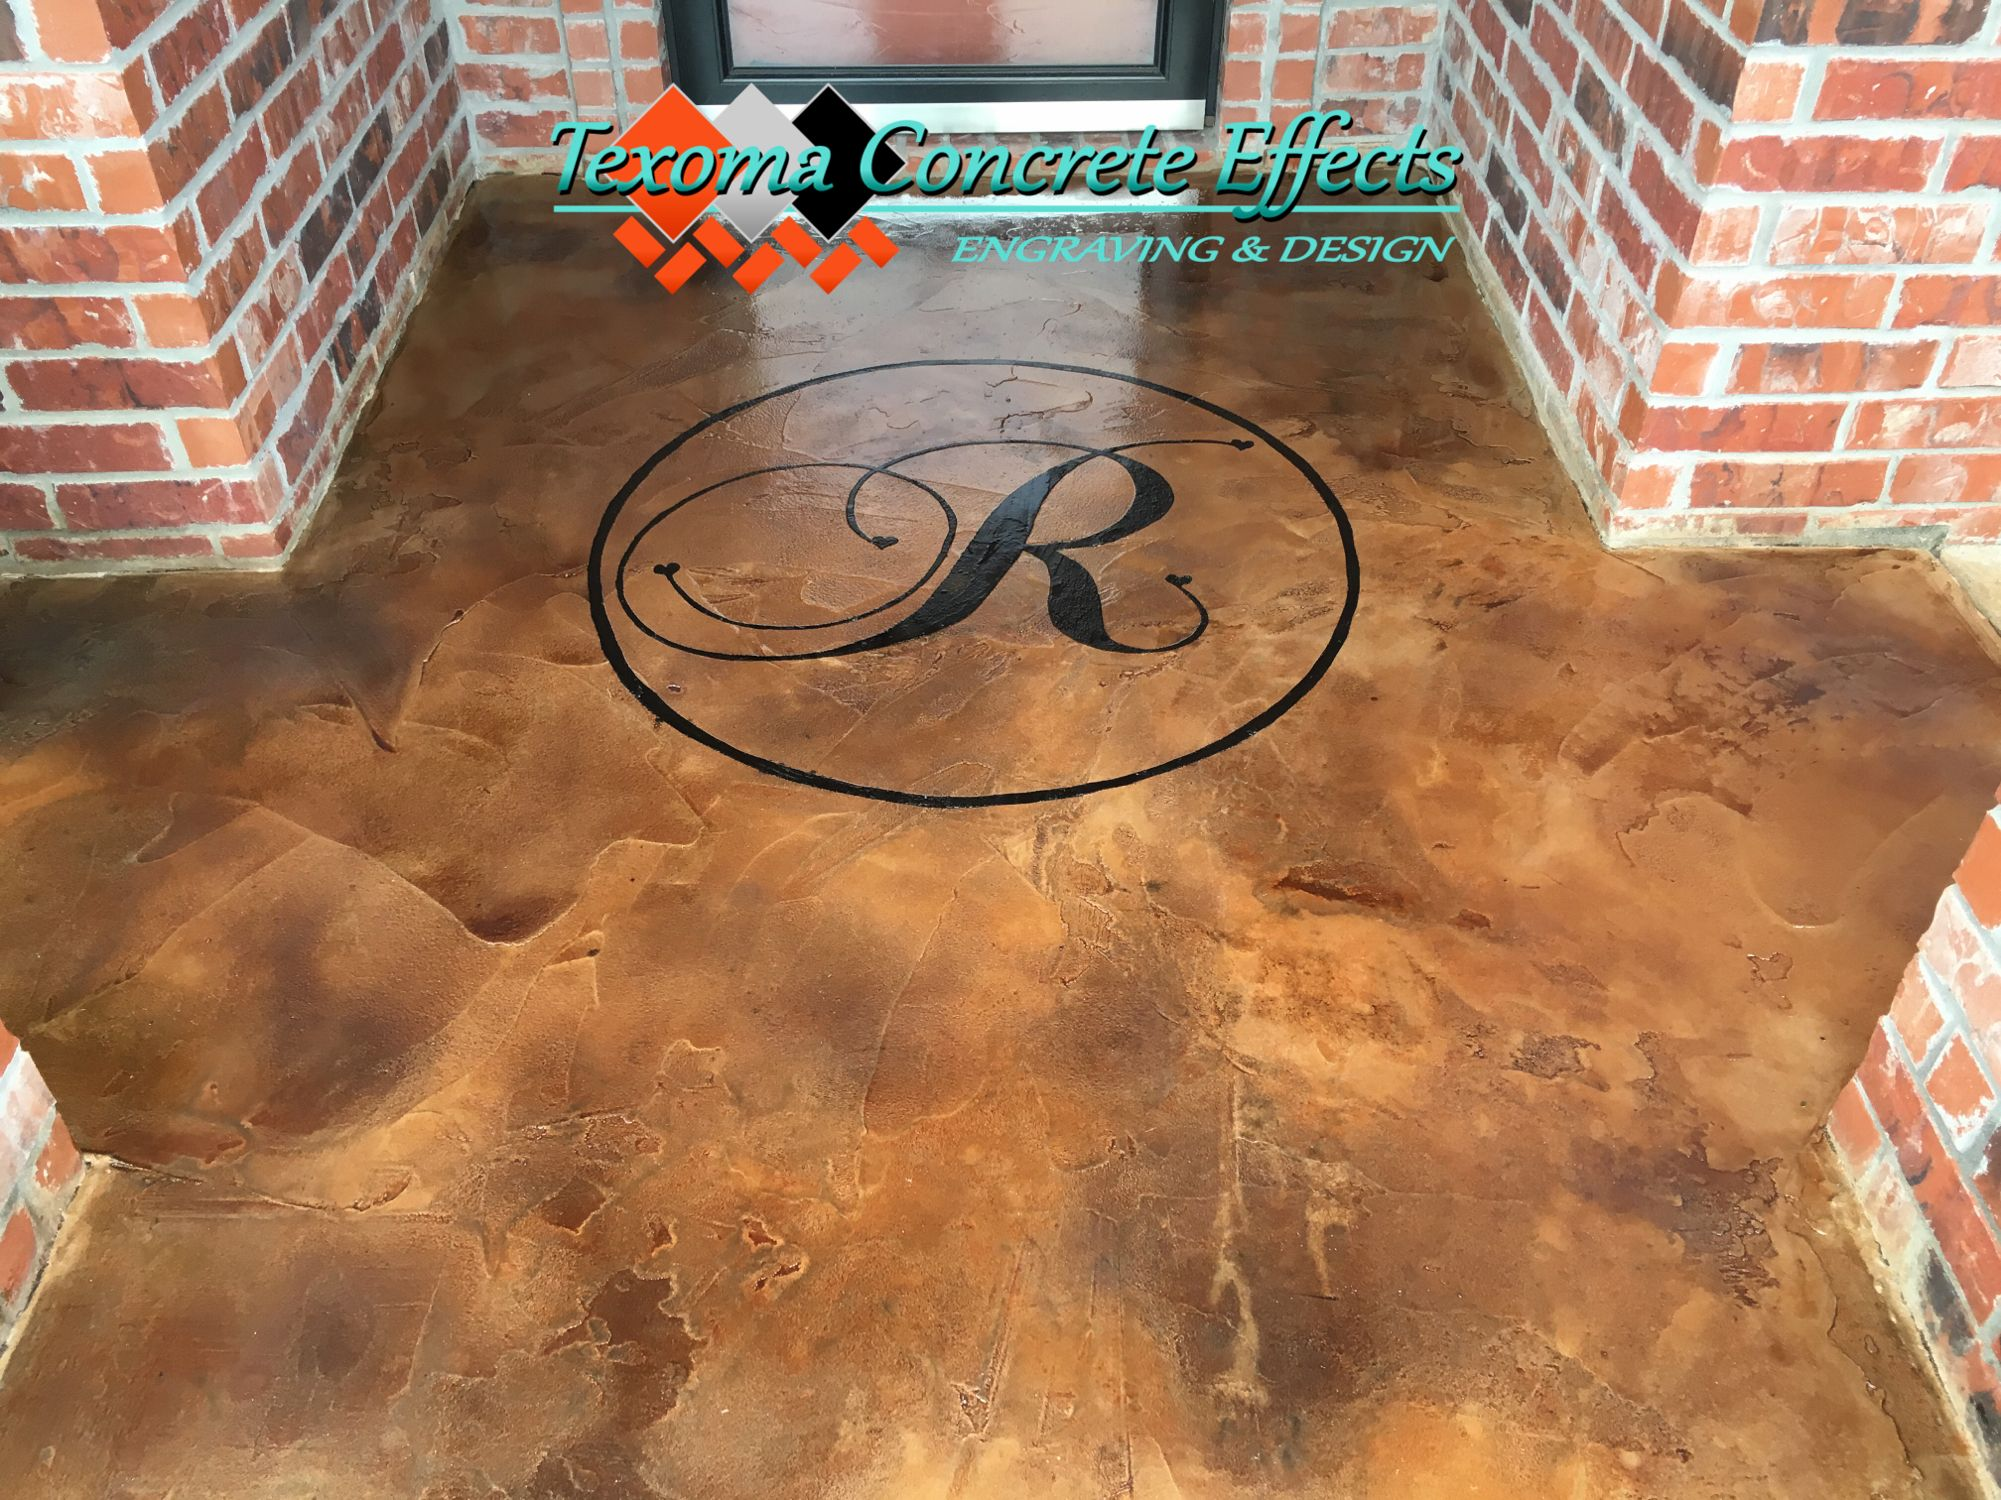 Concrete overlay with last name initial front porch by Texoma Concrete Effects, Iowa Park, TX.